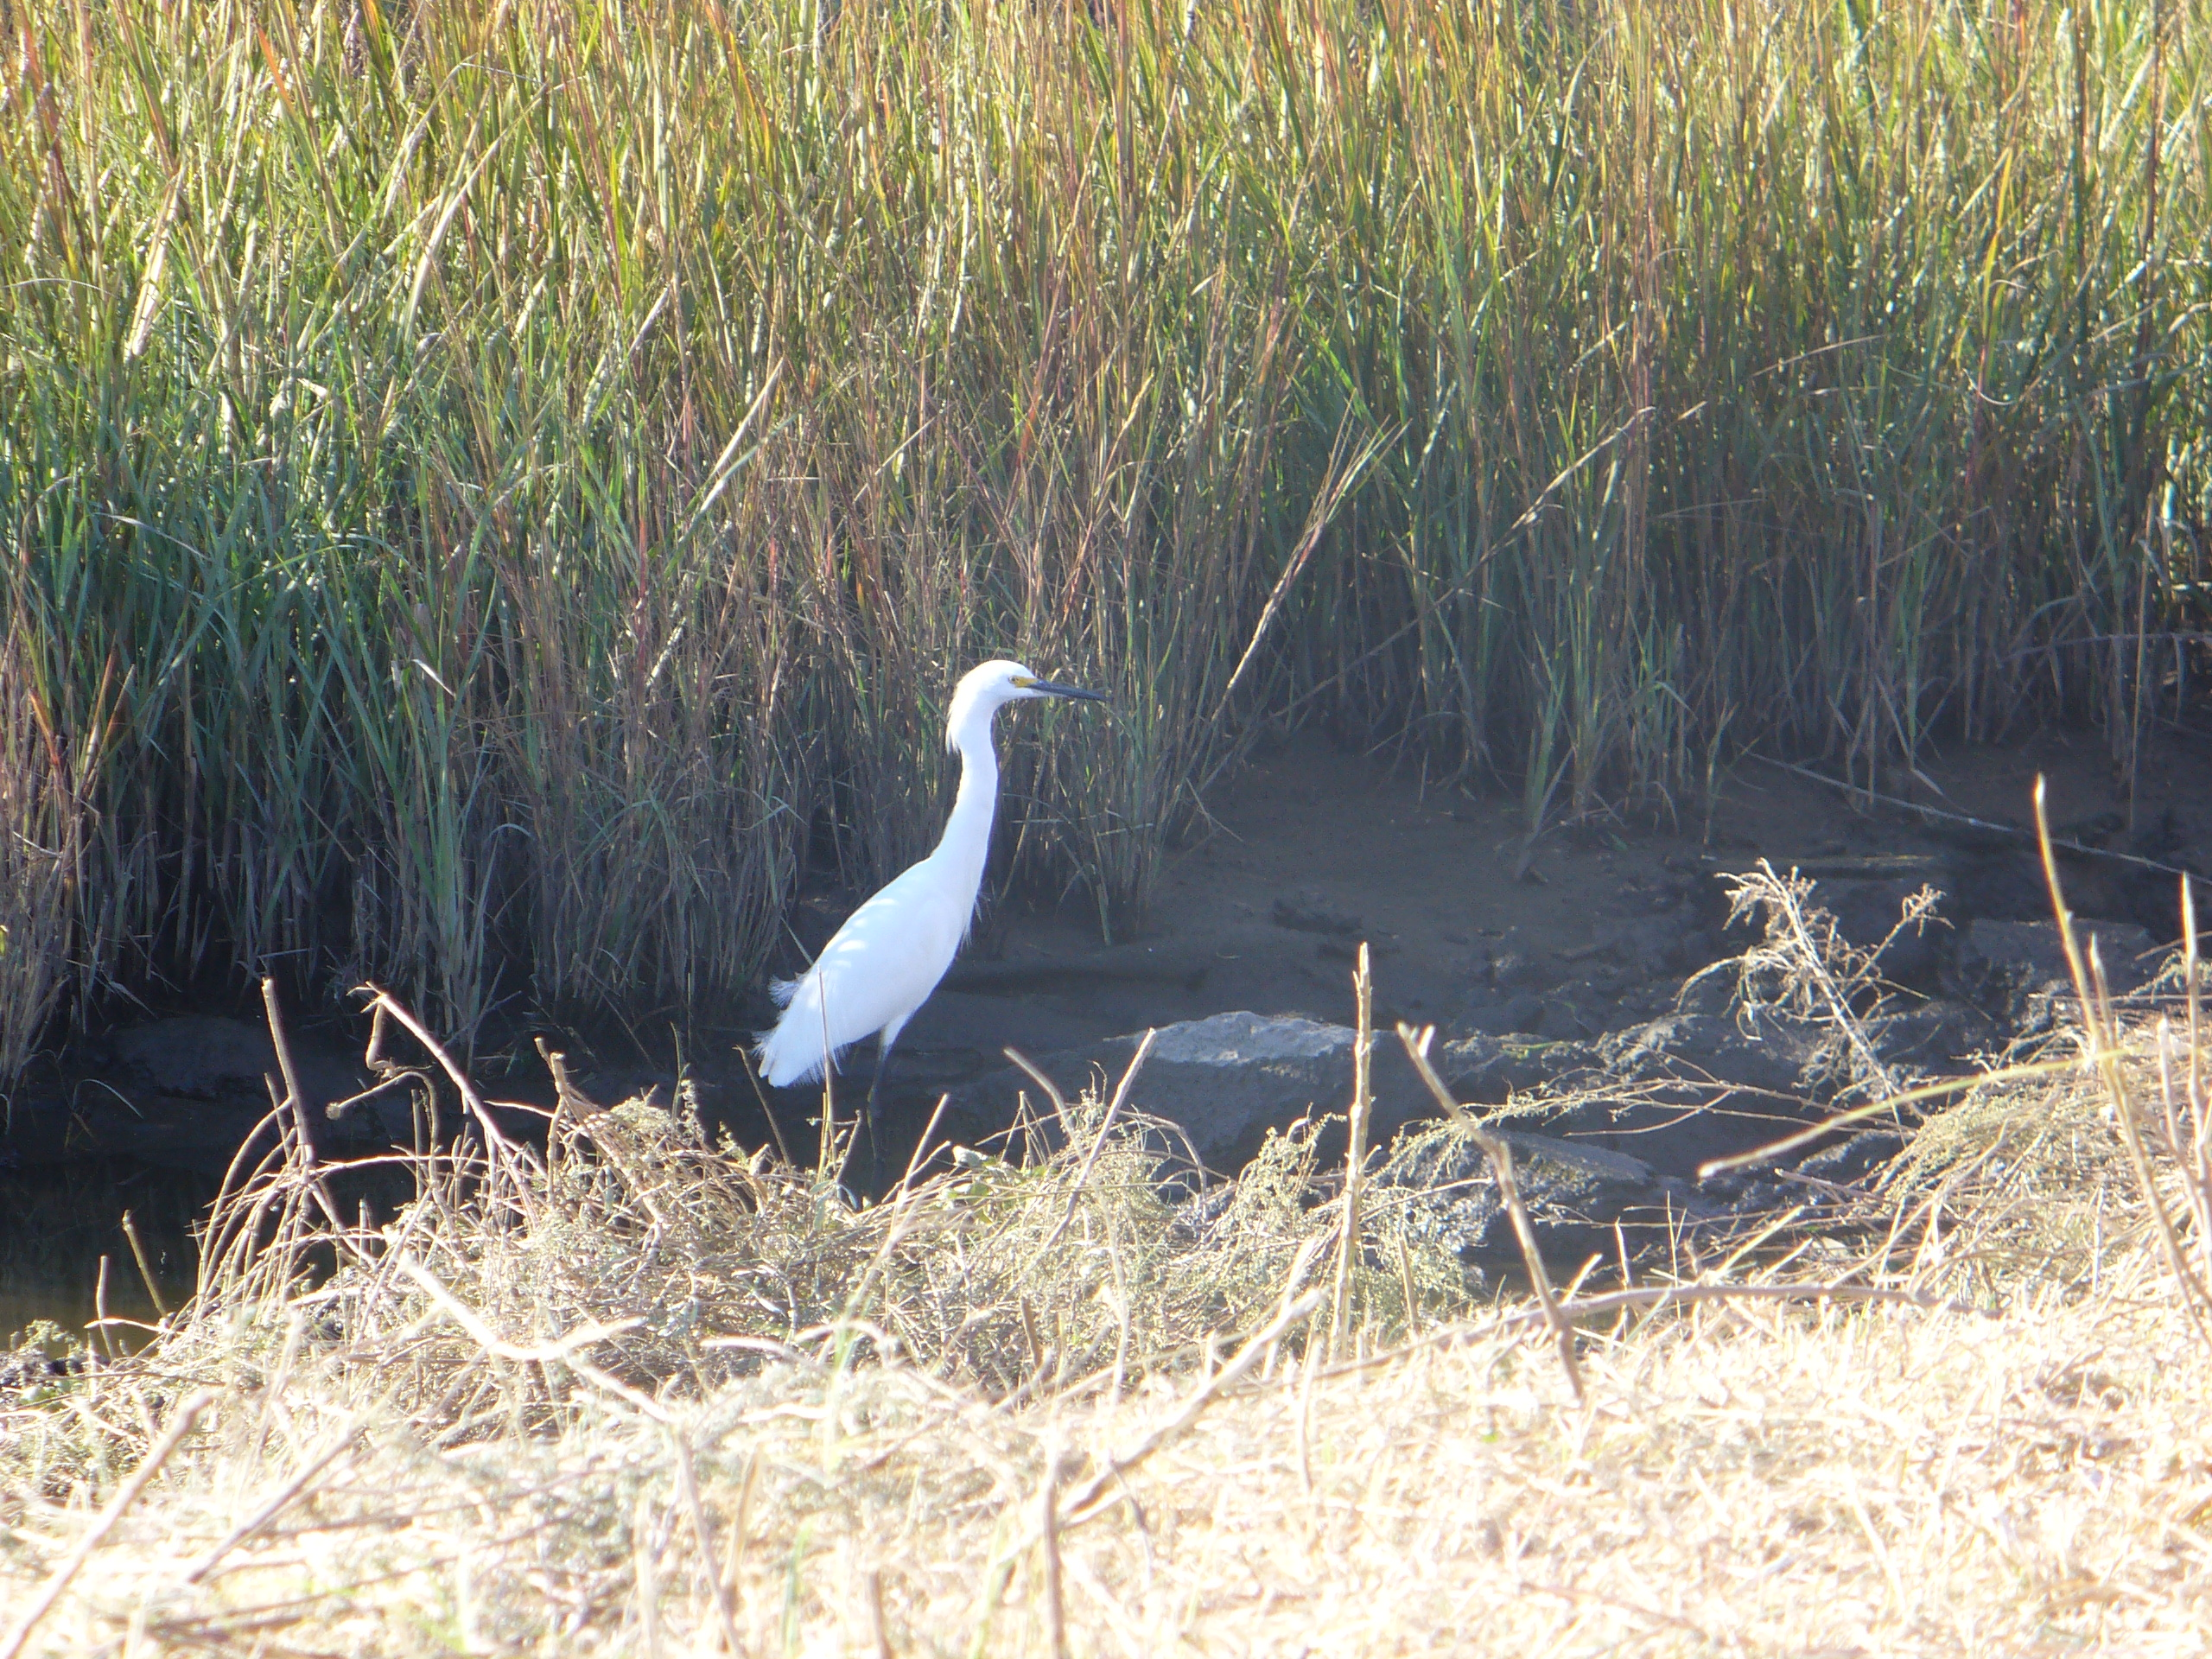 Explore Galveston Wildlife with Birding 201